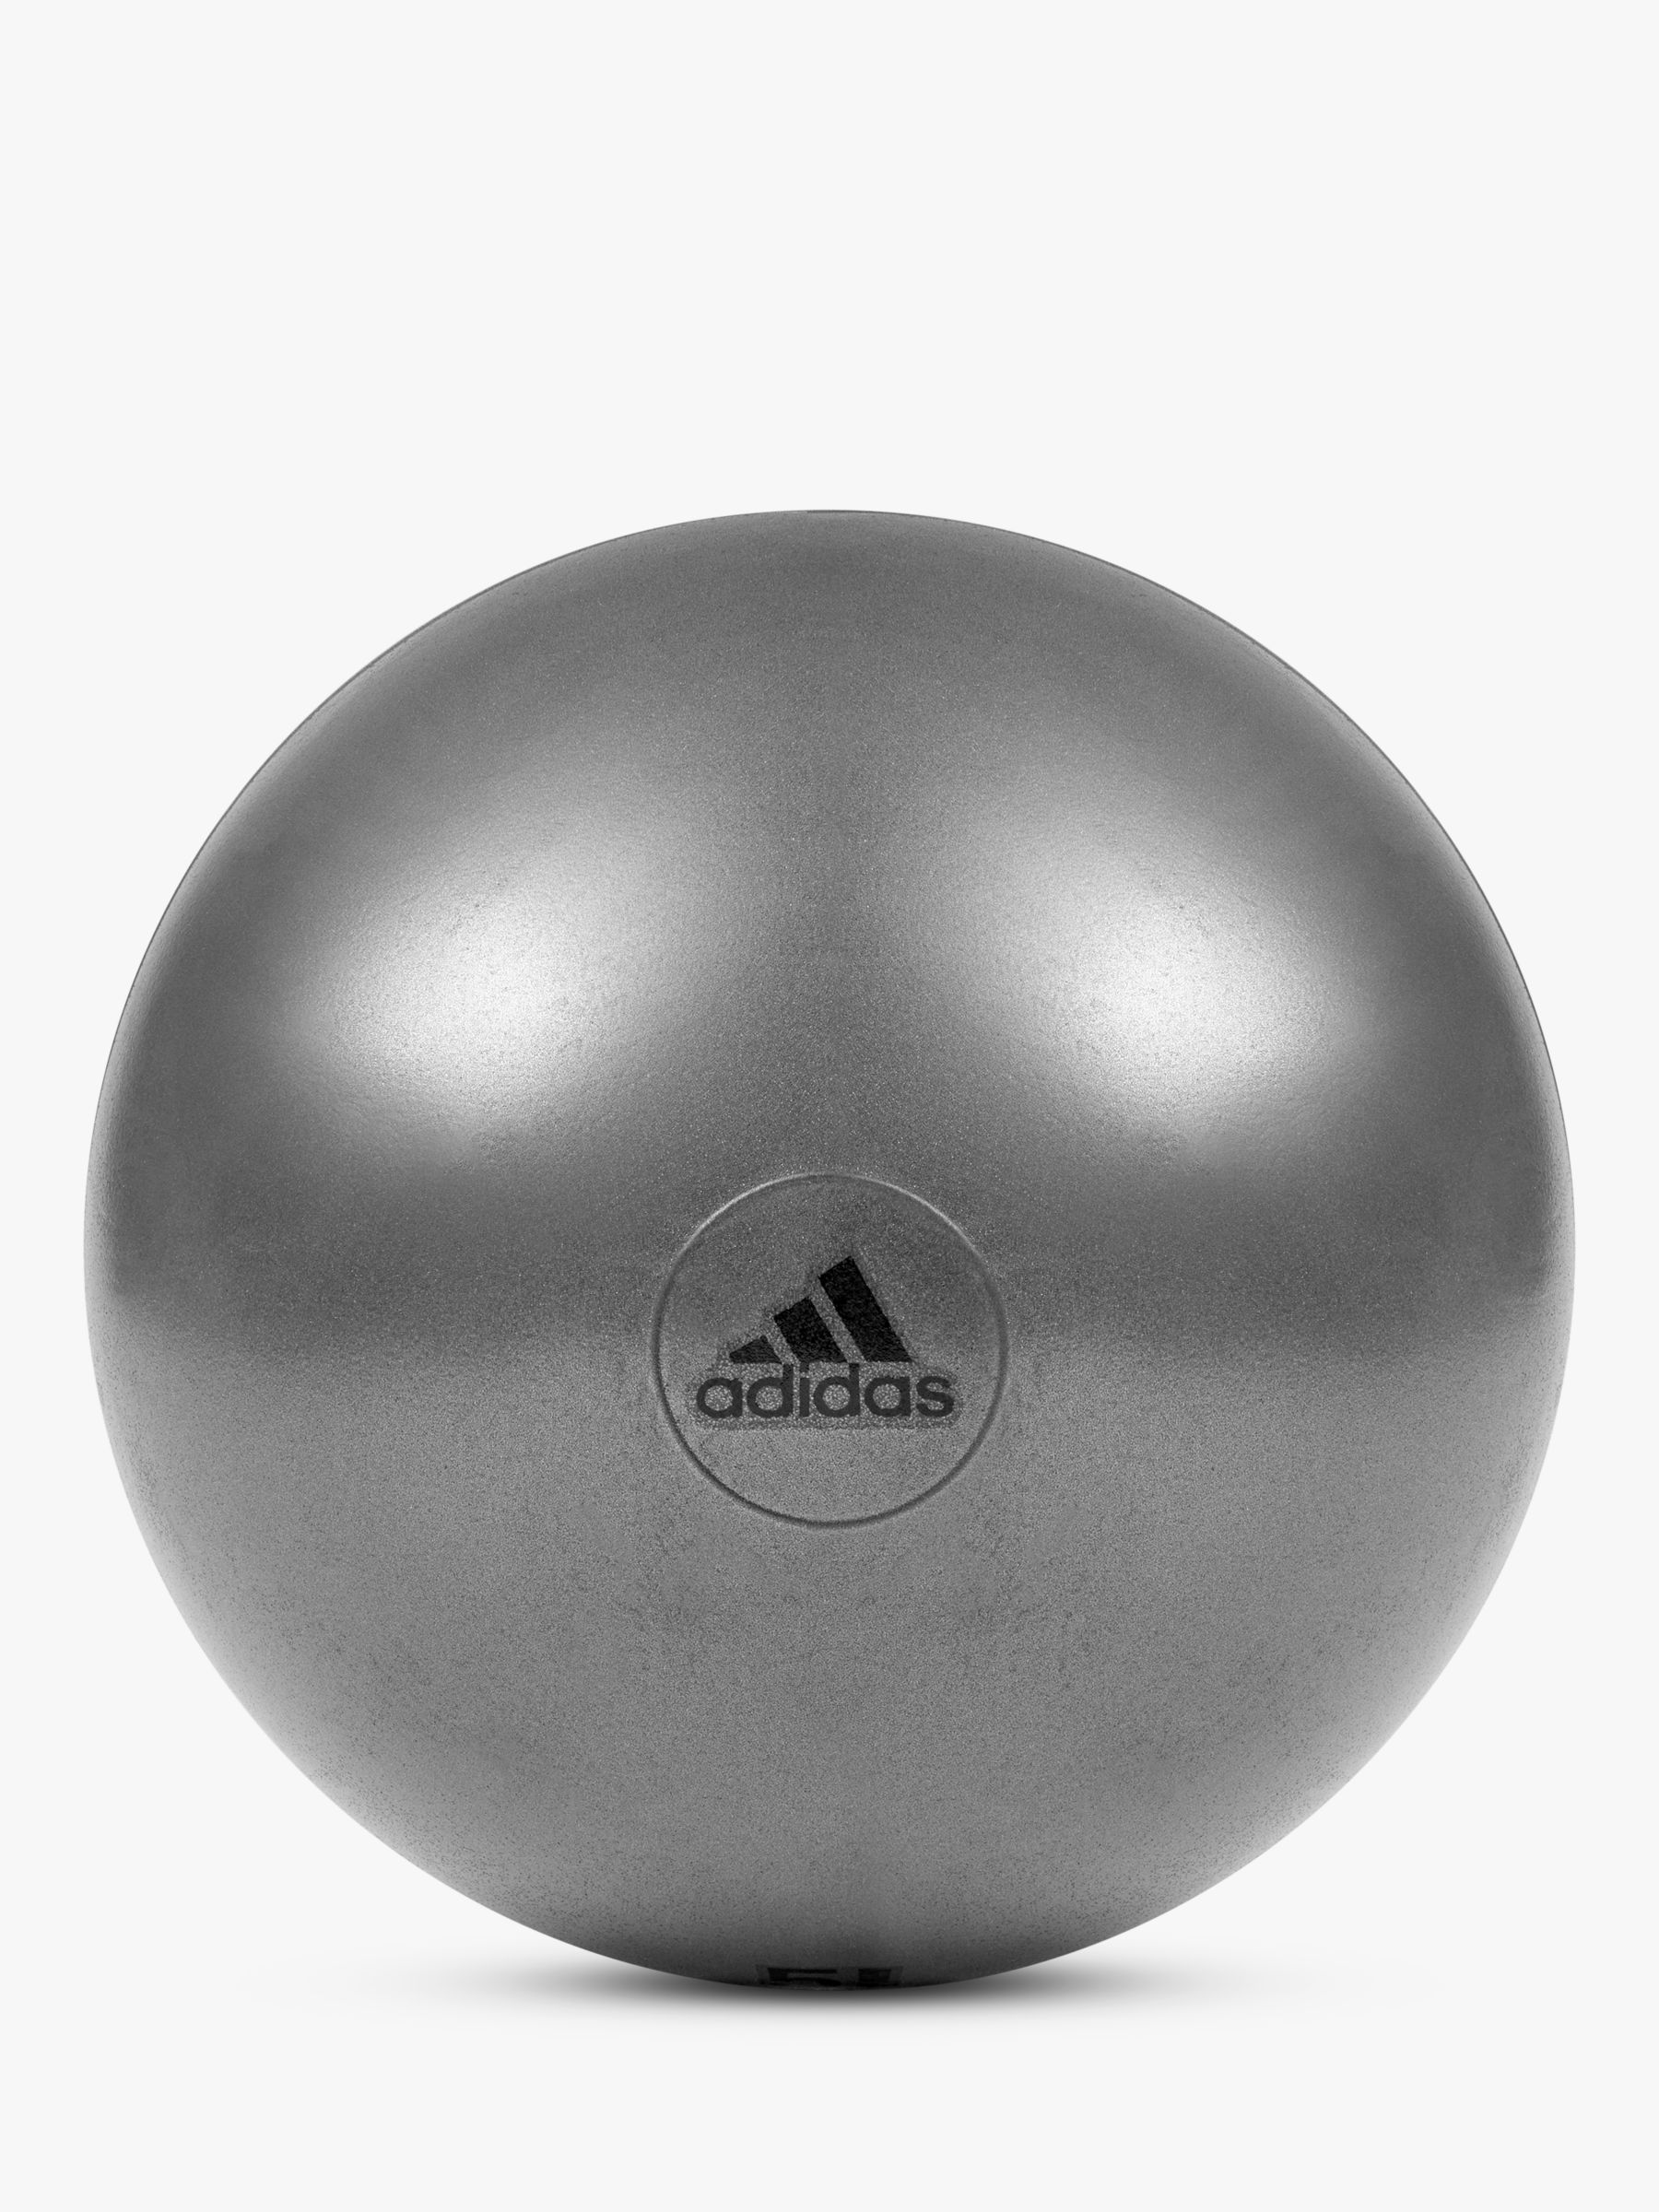 Adidas adidas Gym Balance Ball, Grey, 75cm